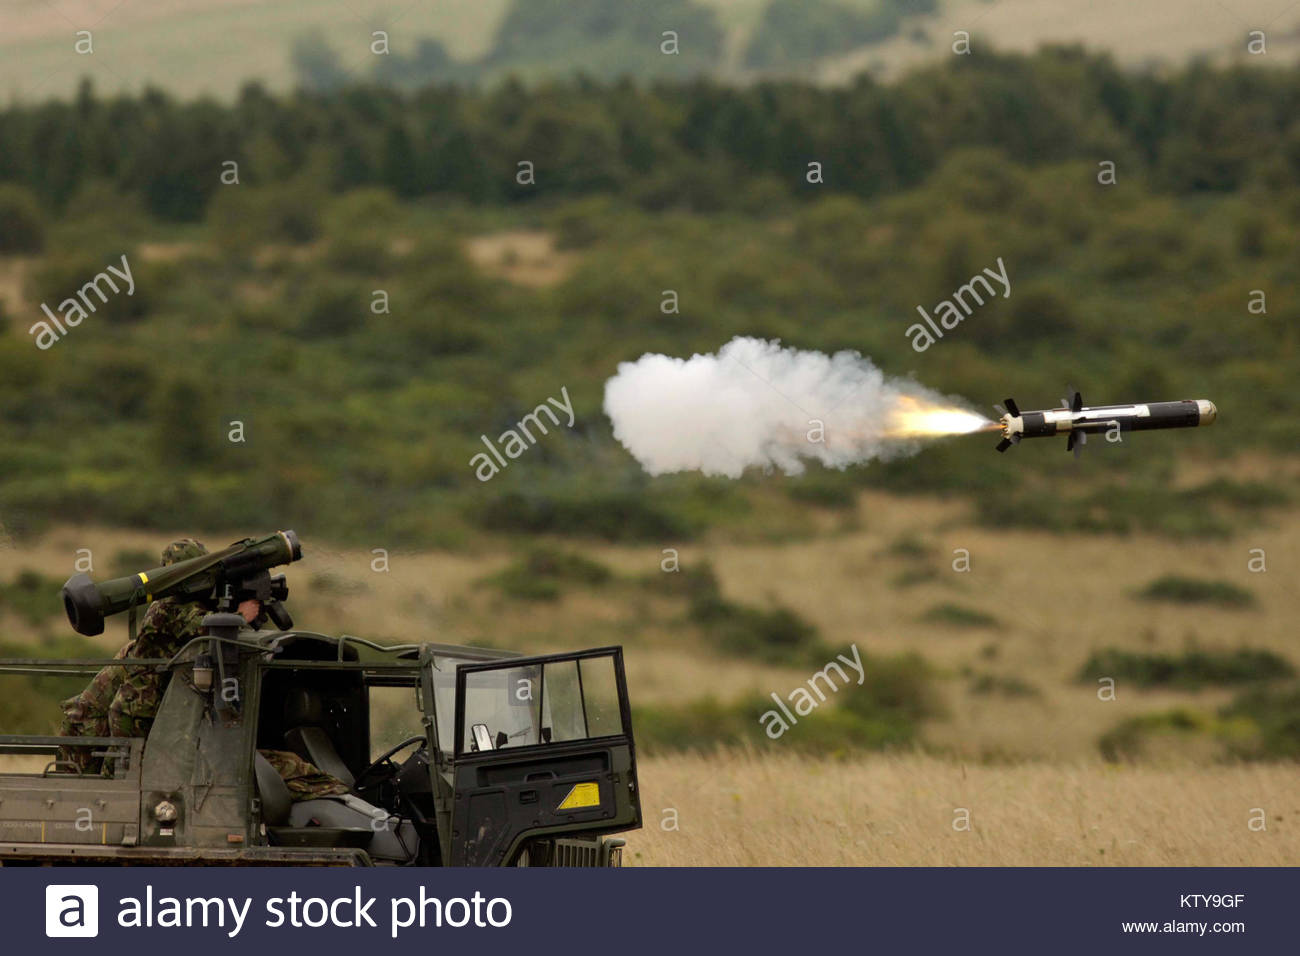 The first public demonstration of Javelin anti-tank missile systems in Georgia 24